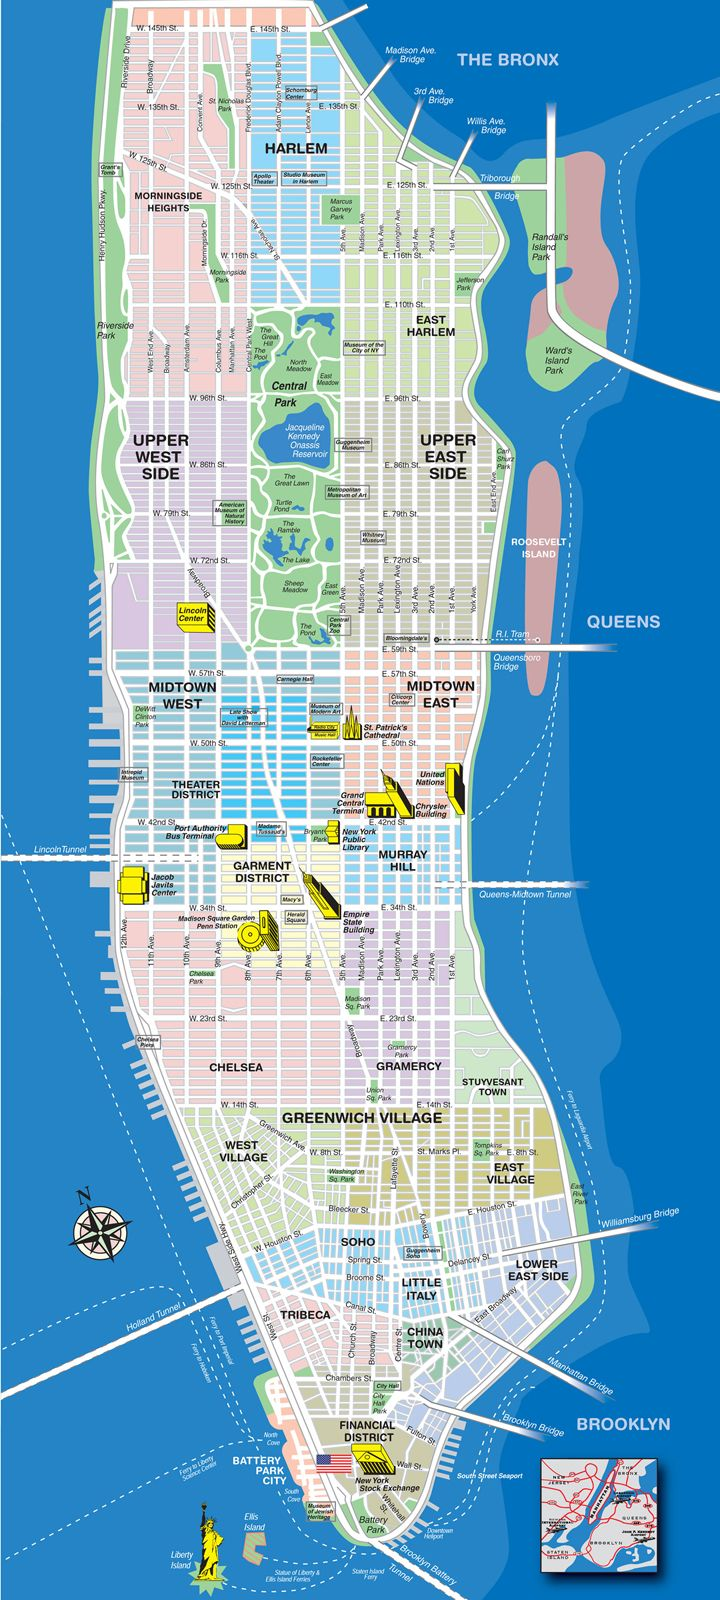 New York City Map Manhattan | Manhattan Tourist Map See map details ...